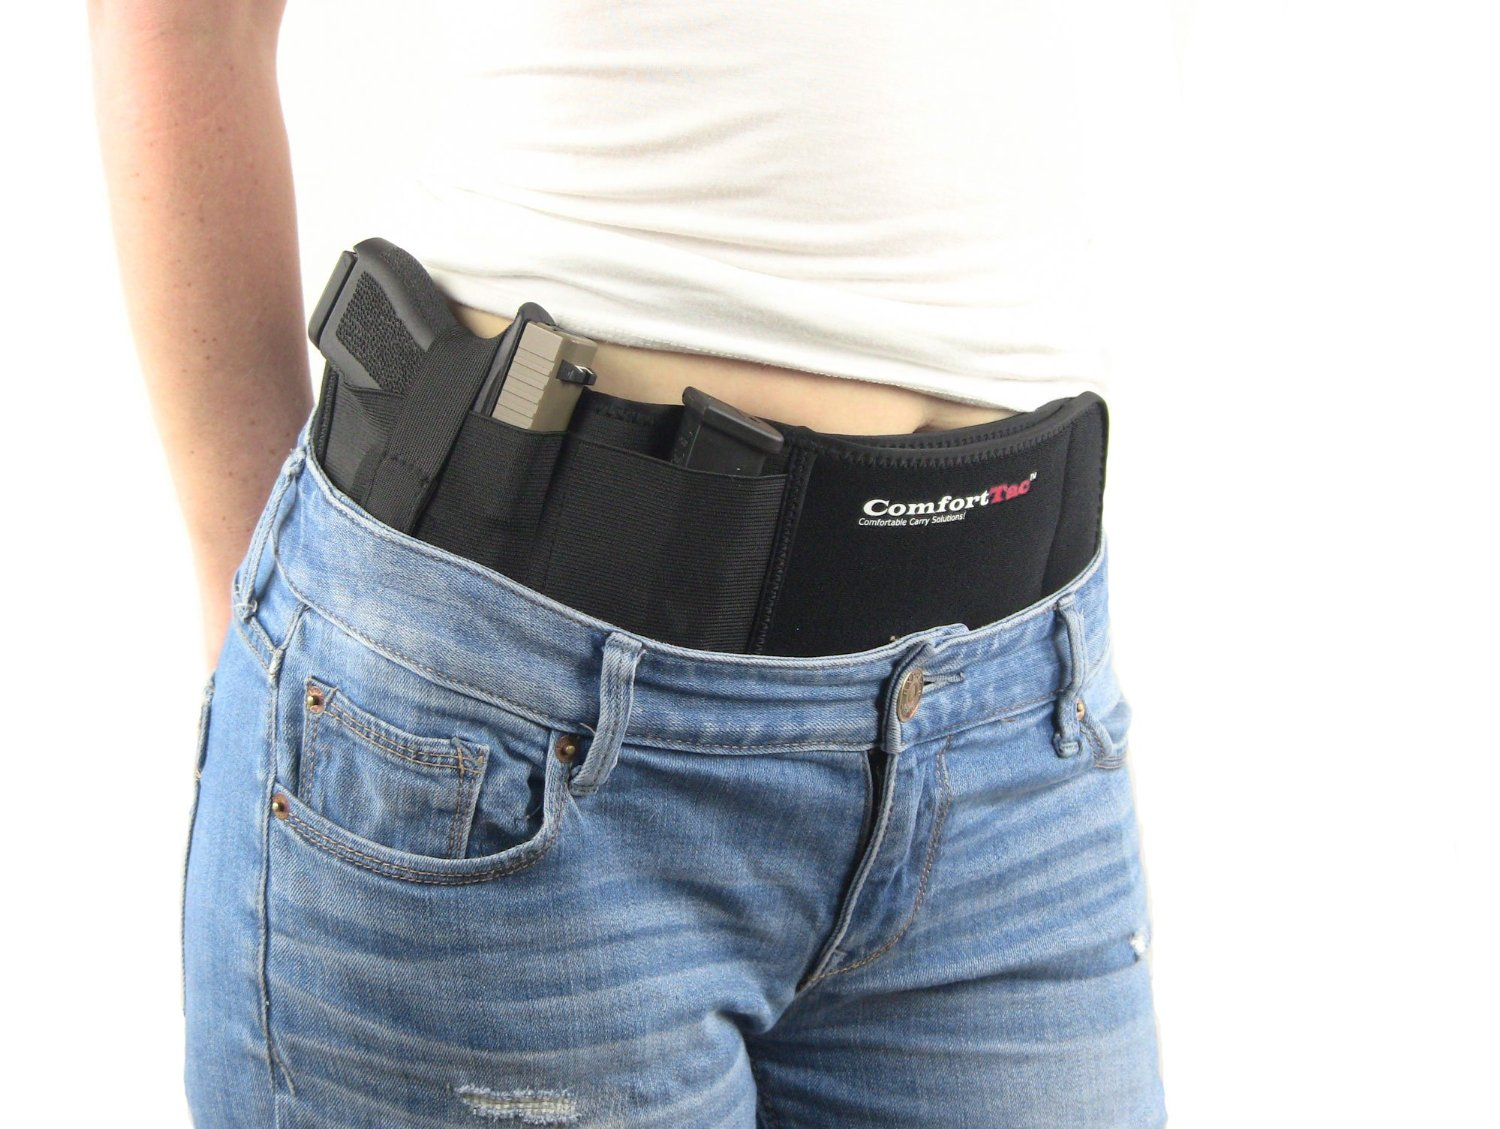 809ee24d82d623 Concealed Carry Womens Wear « Alzheimer's Network of Oregon